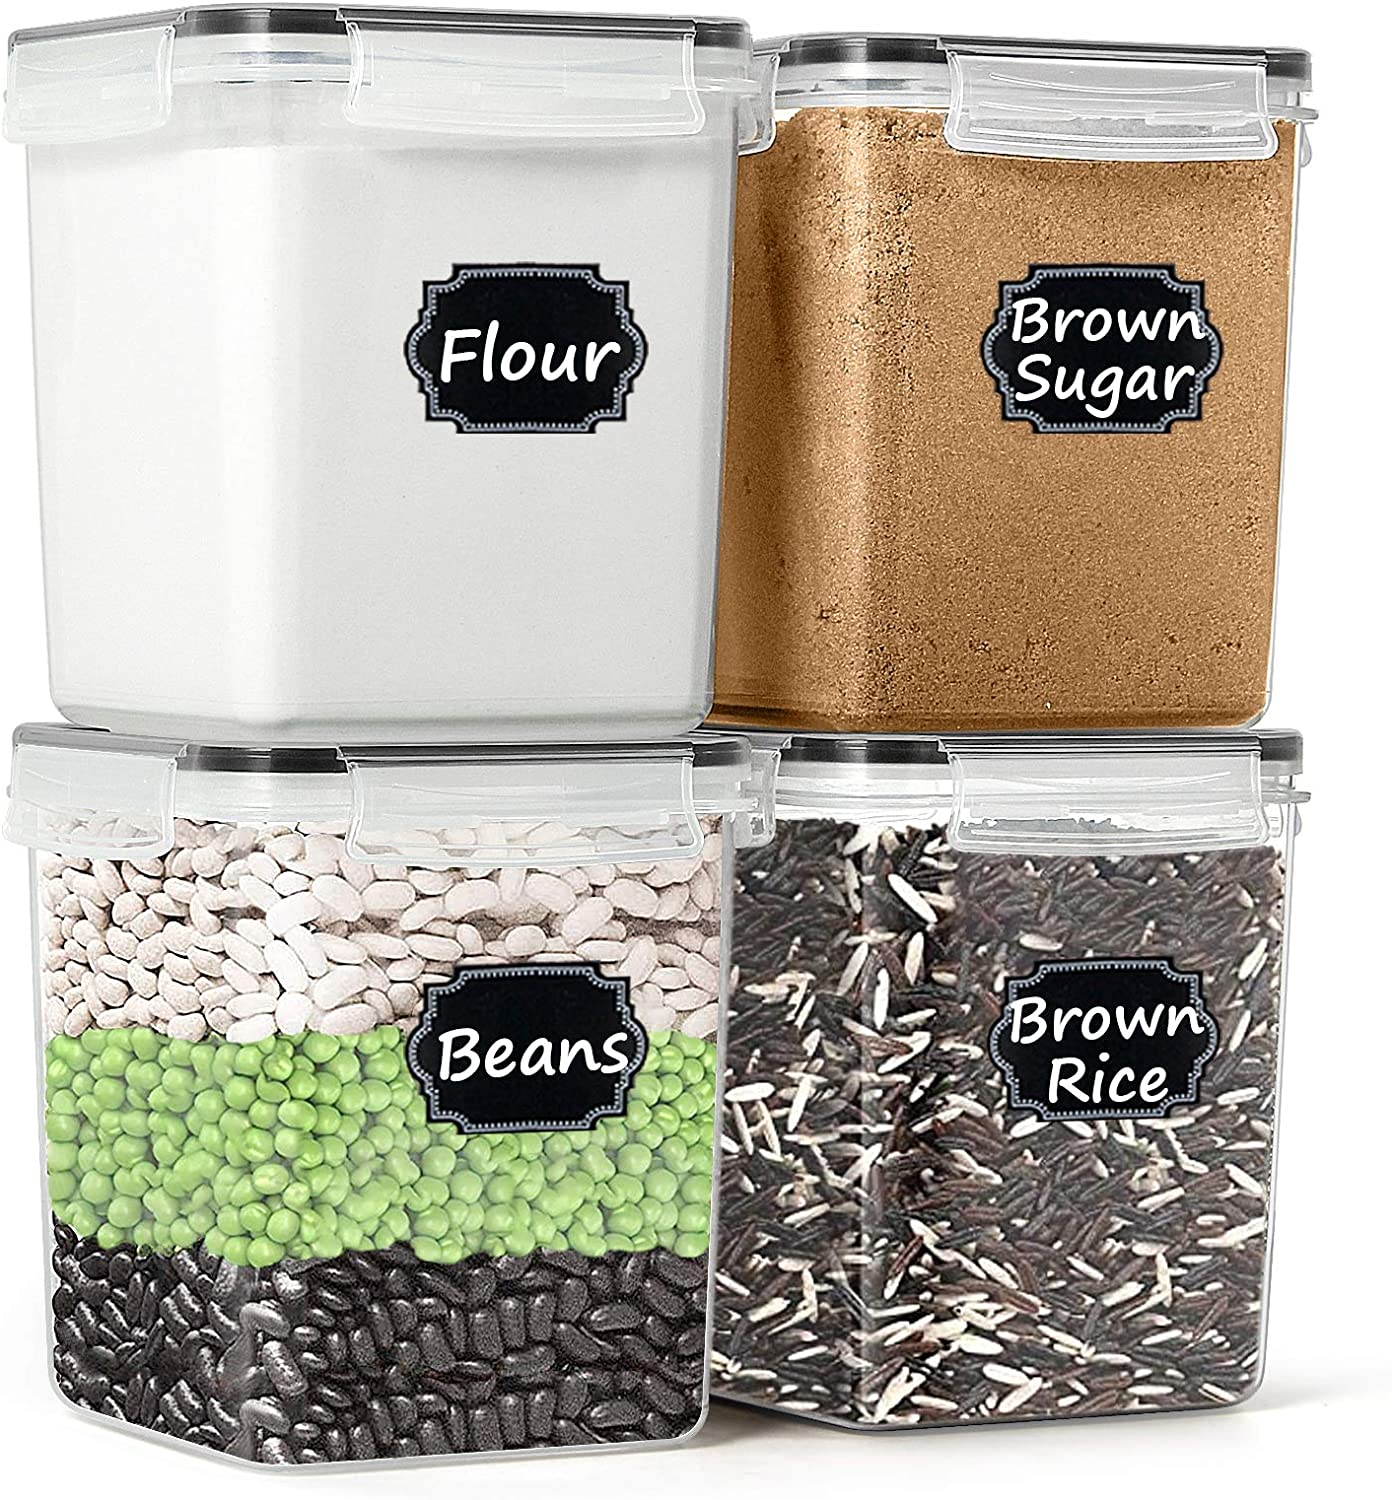 Airtight Food Storage Containers - Paincco Cereal & Dry Food Storage Containers Set of 4 [2.5L /84.5oz], Leak Proof & BPA Free Kitchen Pantry Organization for Flour and Baking Supplies